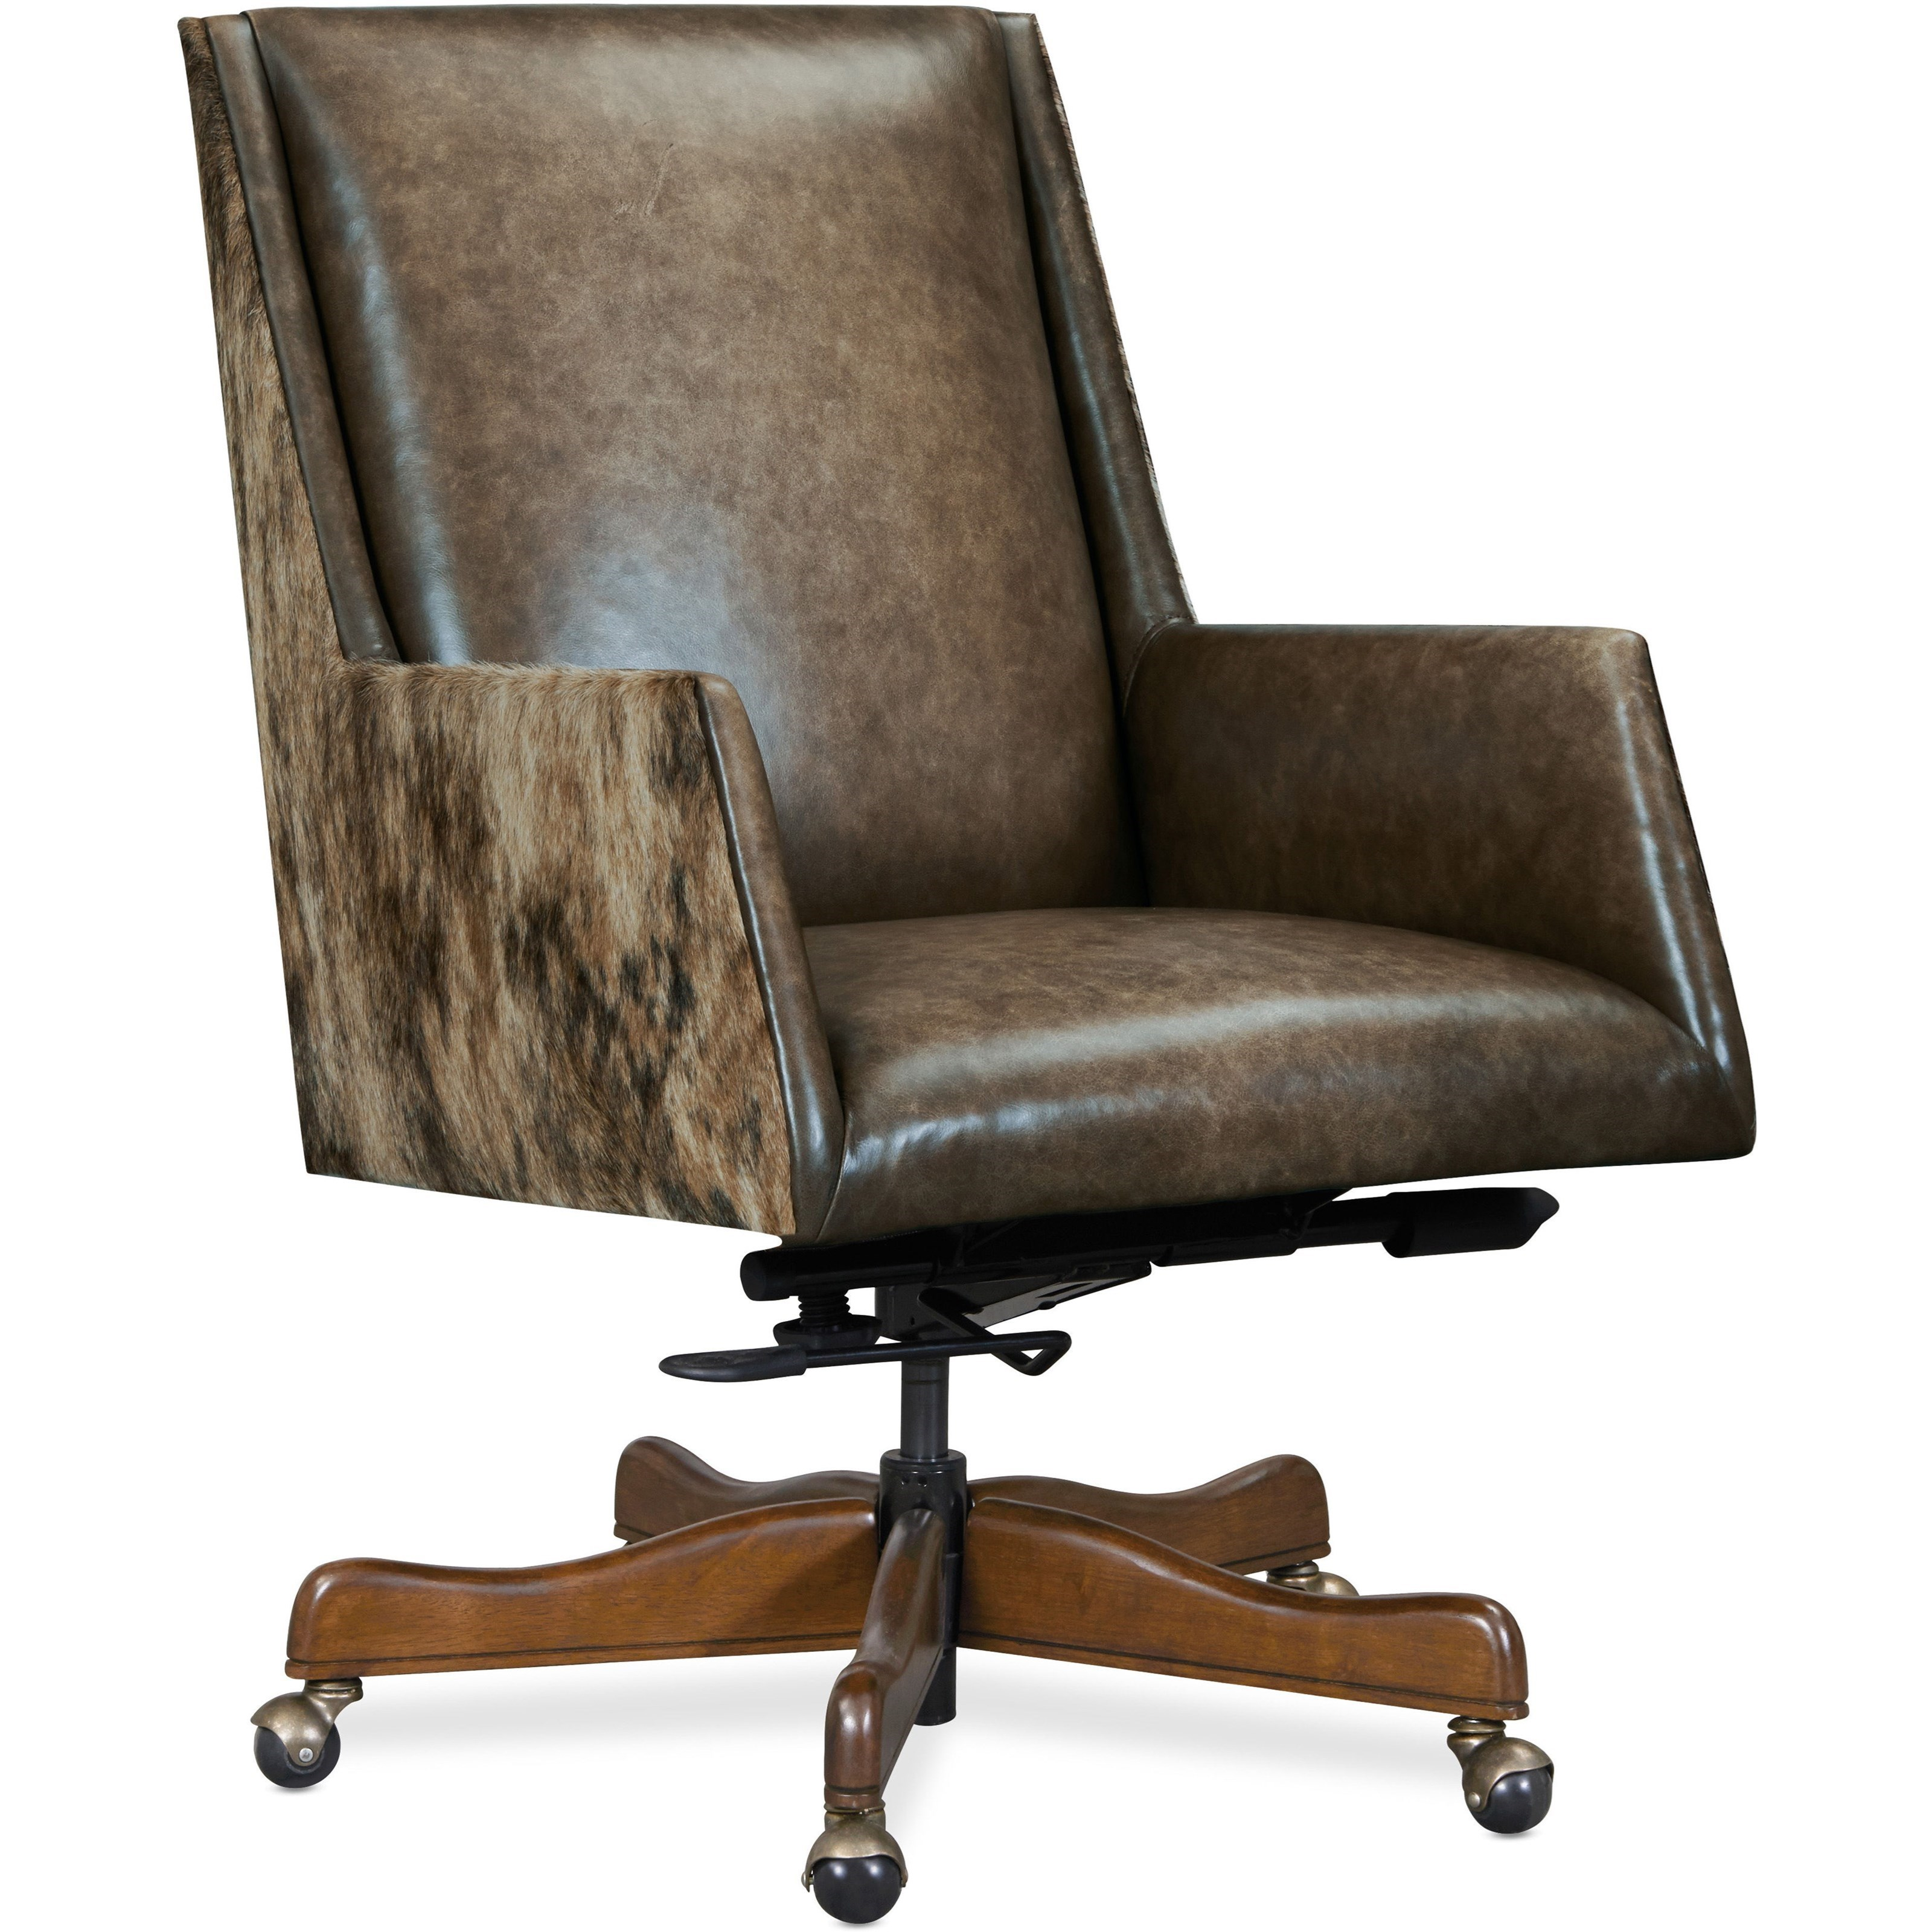 Executive Seating Rives Executive Swivel Tilt Chair by Hooker Furniture at Miller Waldrop Furniture and Decor